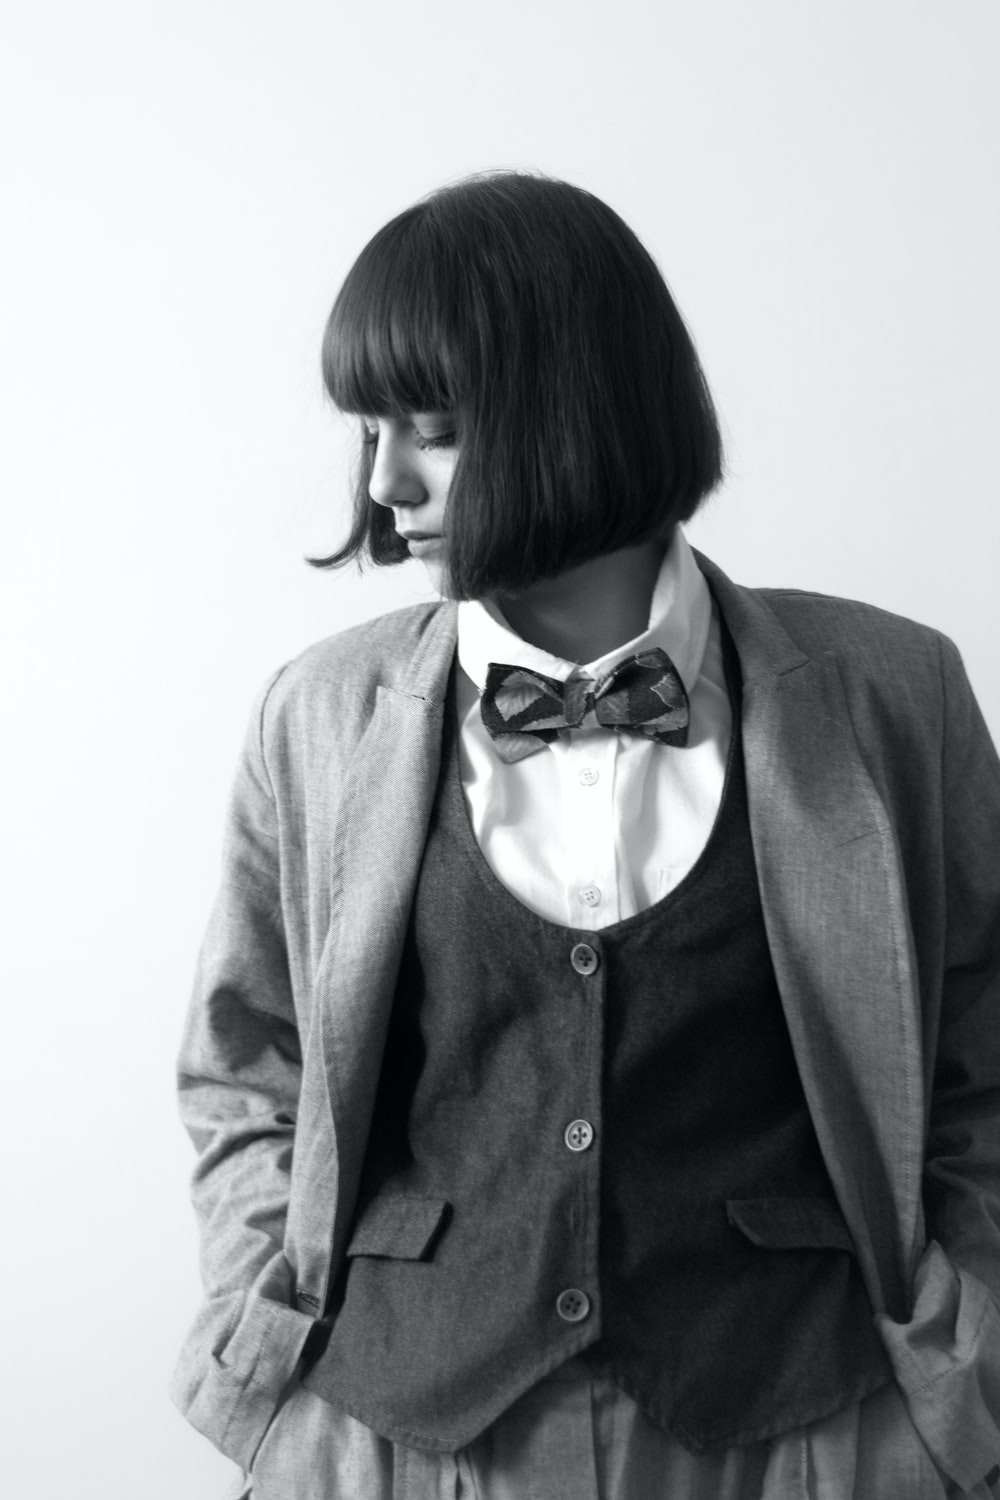 woman in gray blazer with black and white polka dots bowtie